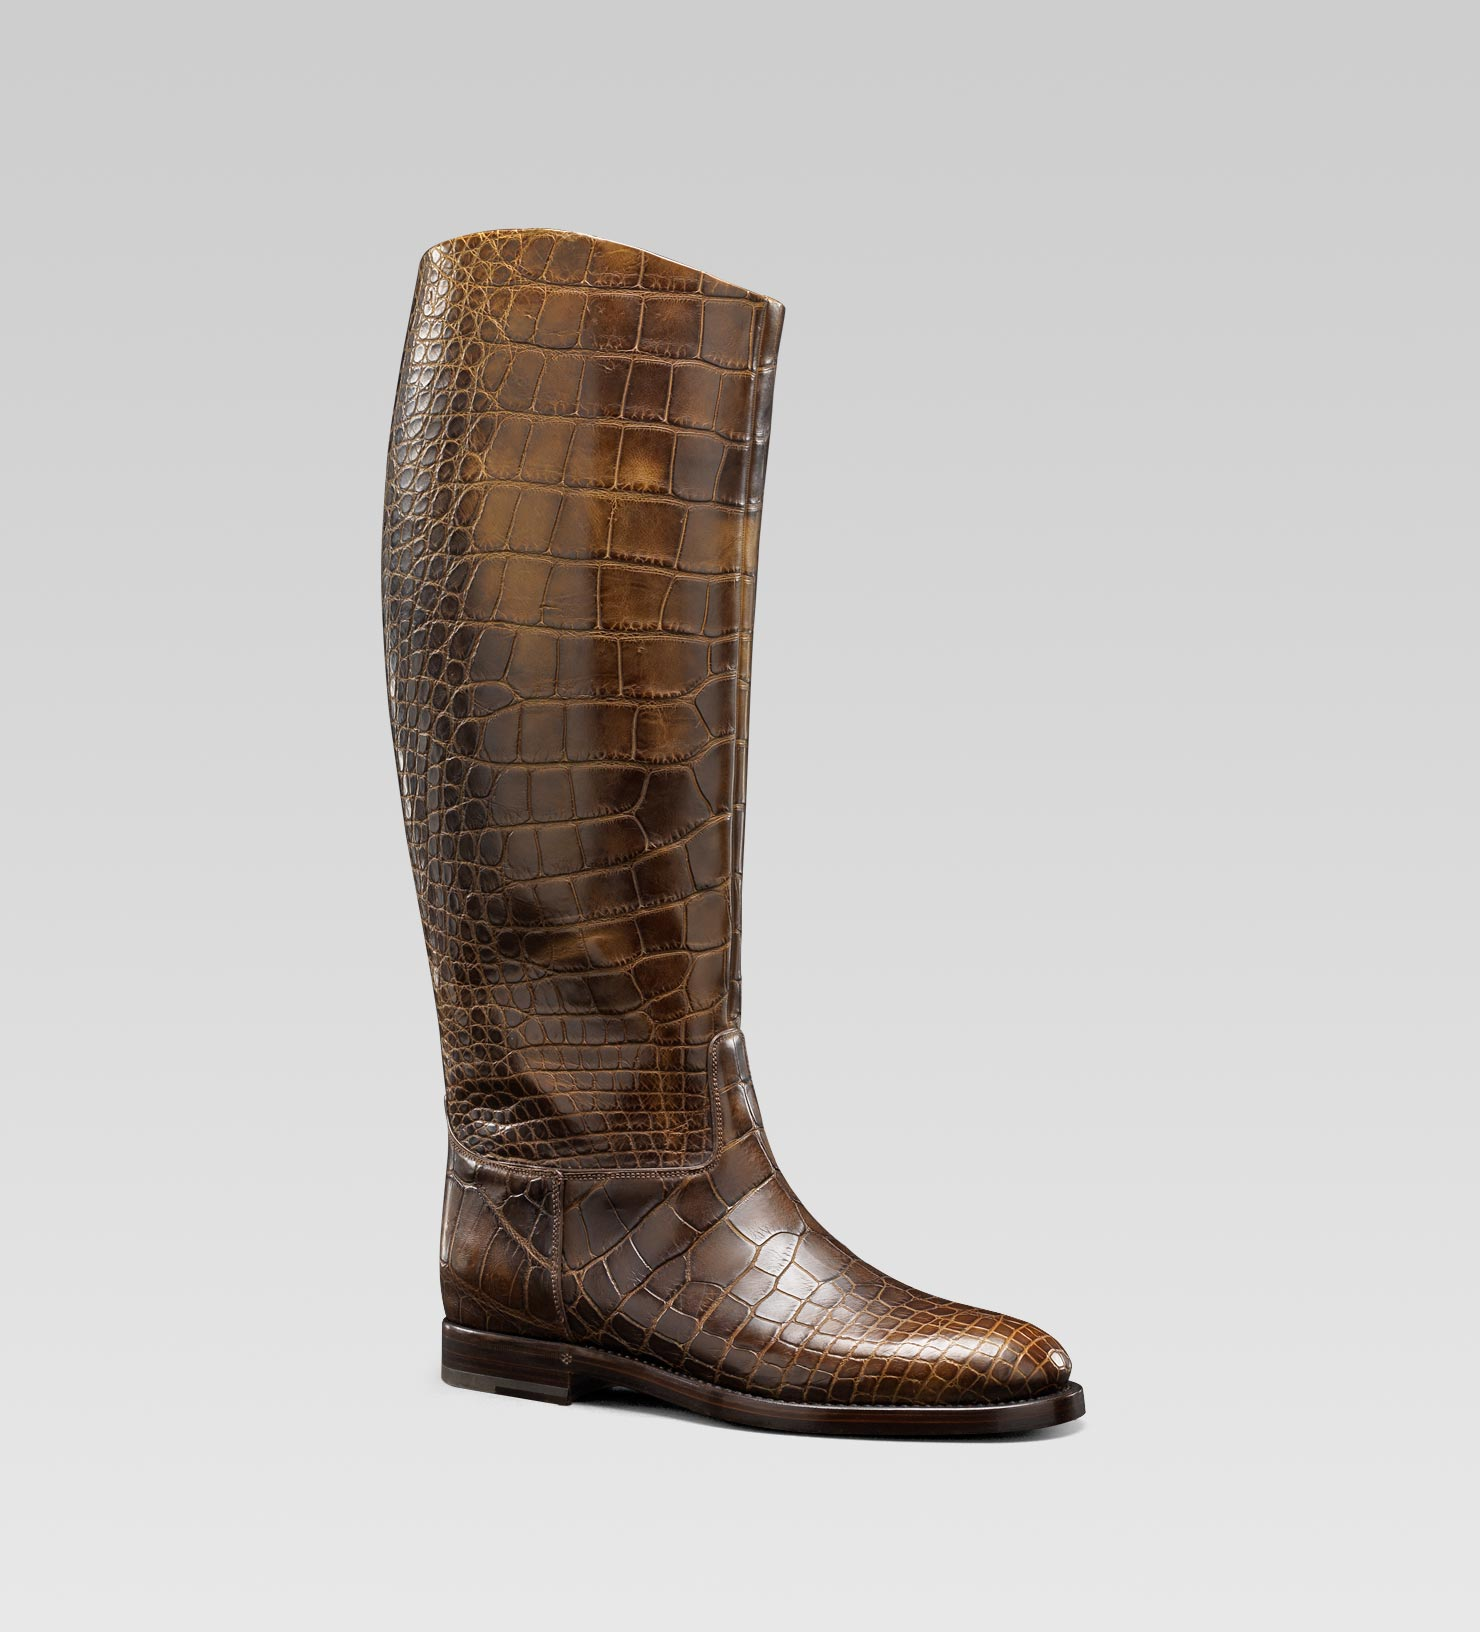 Gucci Mens Collection Riding Boot with Gucci Crest Detail ...